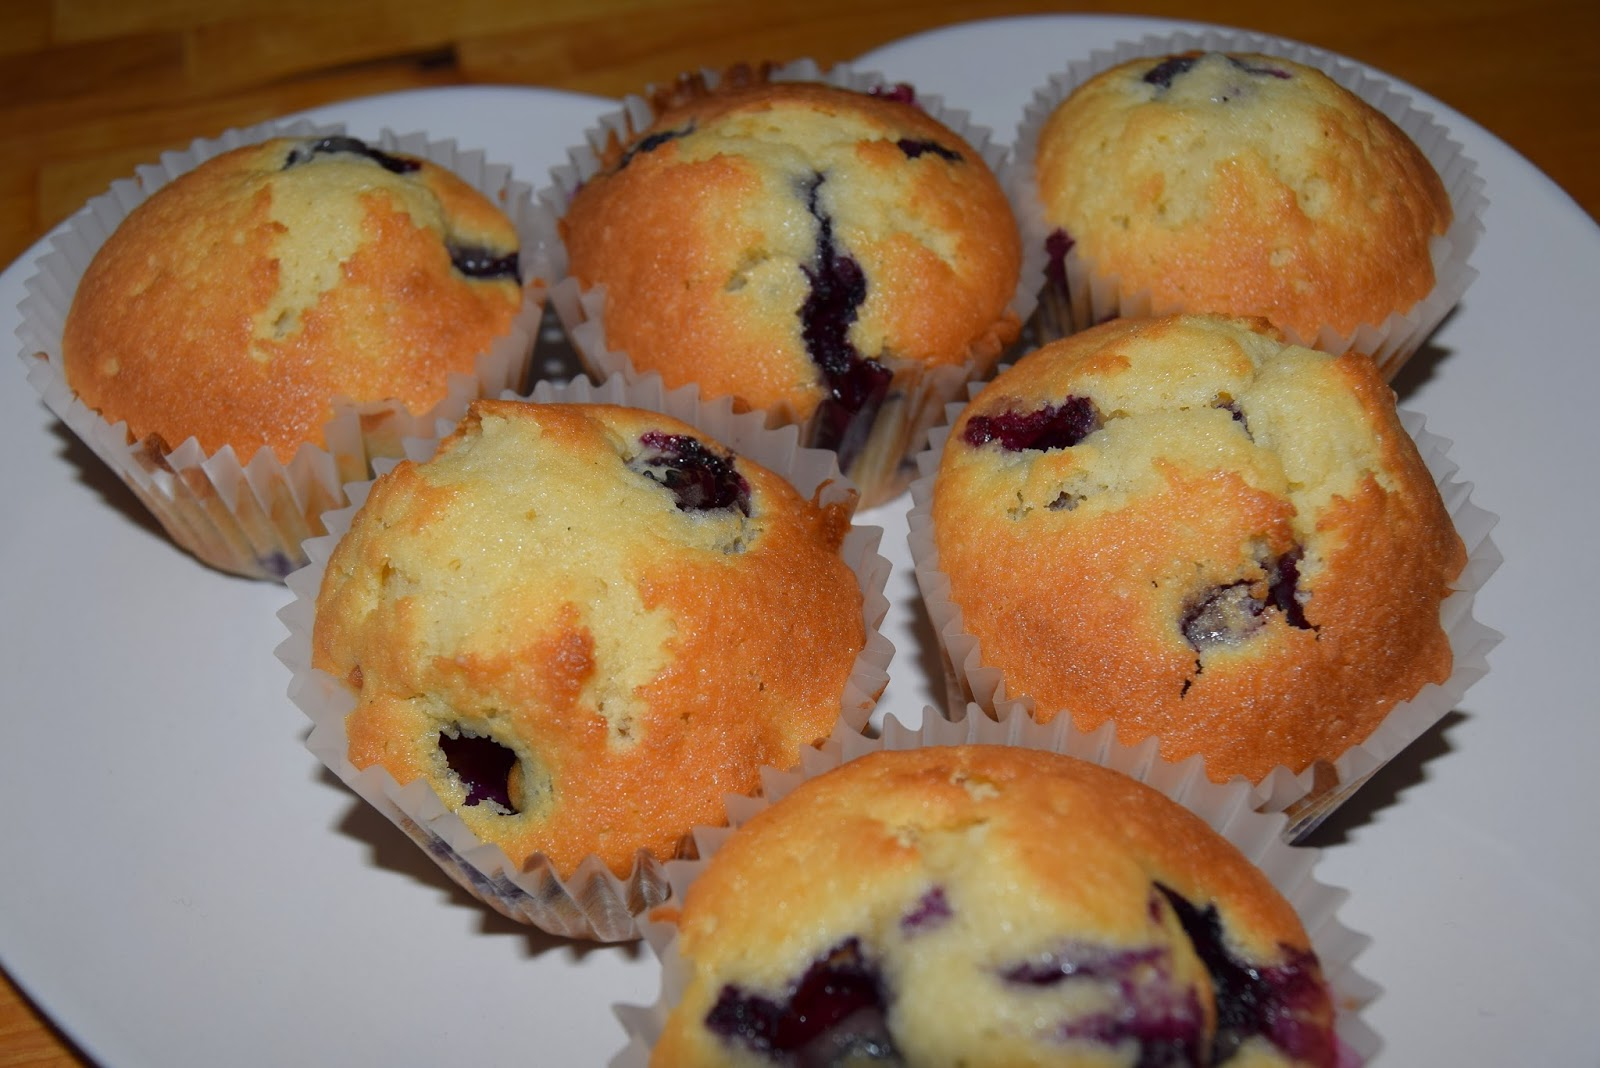 Blueberry Muffins: The Best Muffins I Have Ever Made